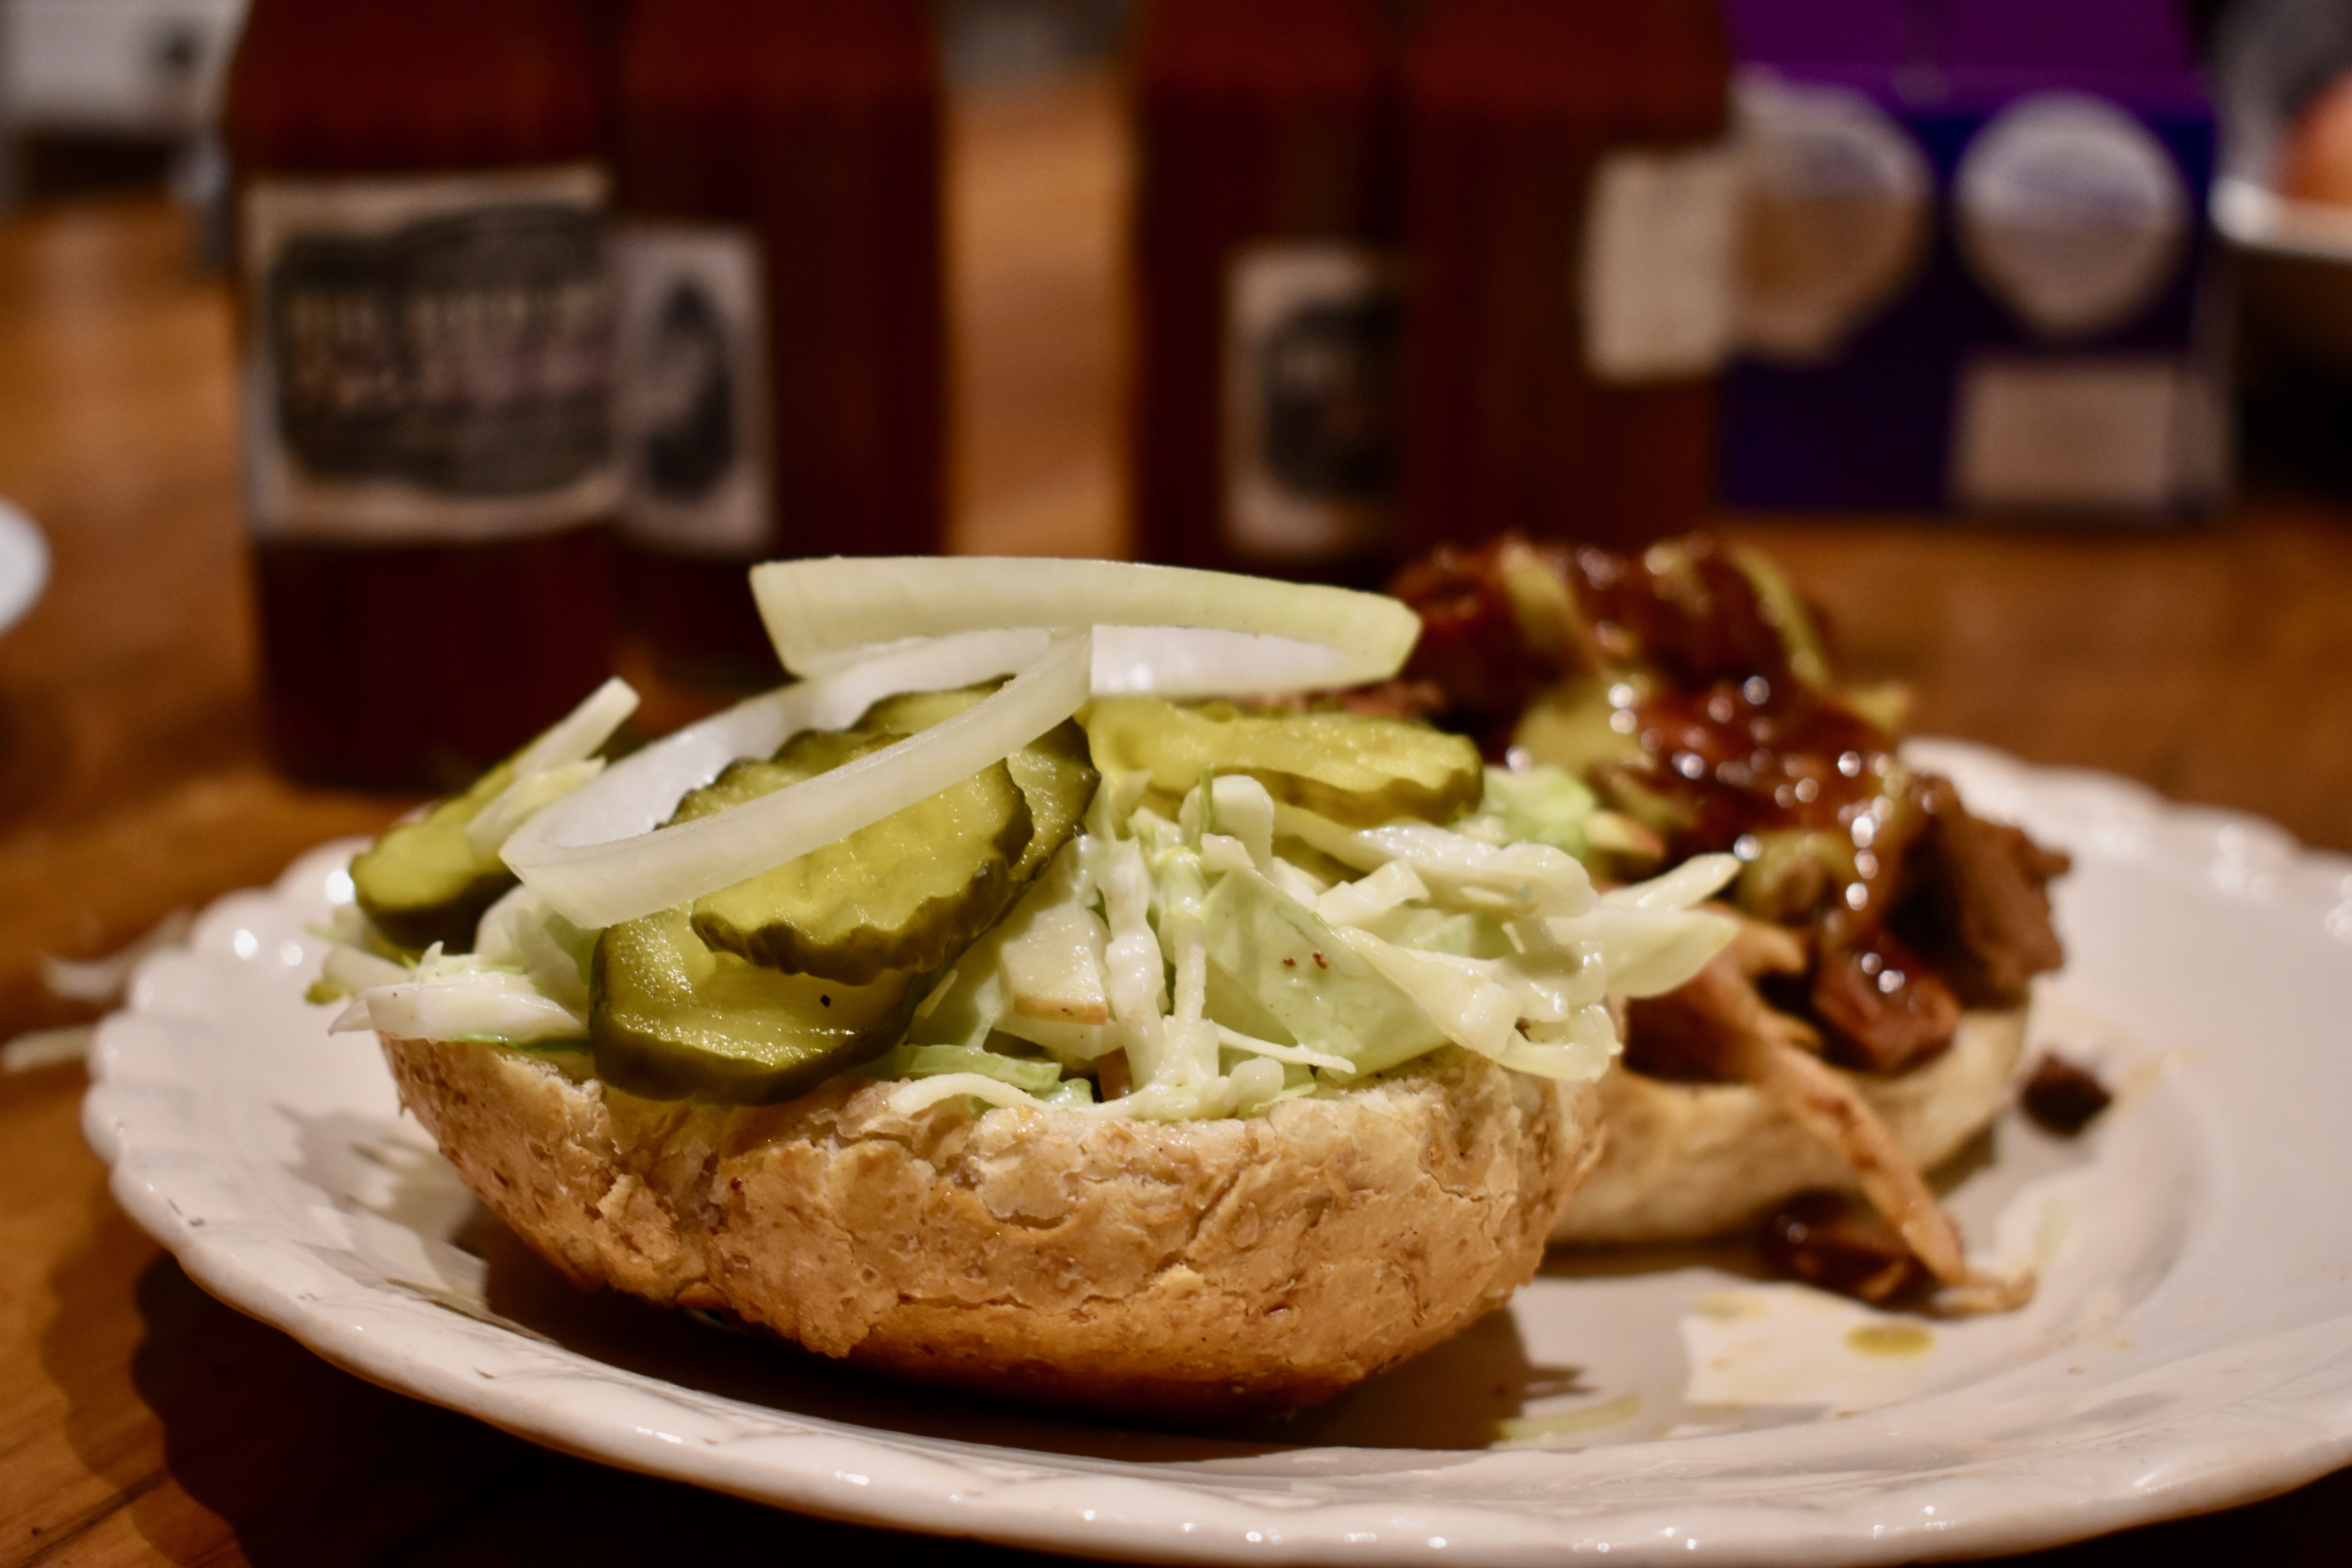 pulled pork burgers with celery and apple slaw